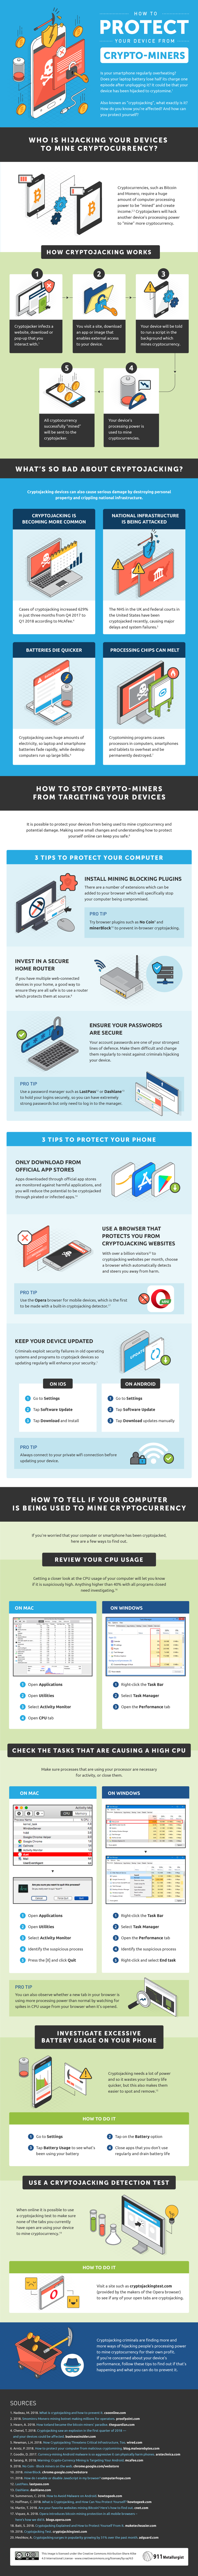 How to protect your devices from crypto-miners - infographic